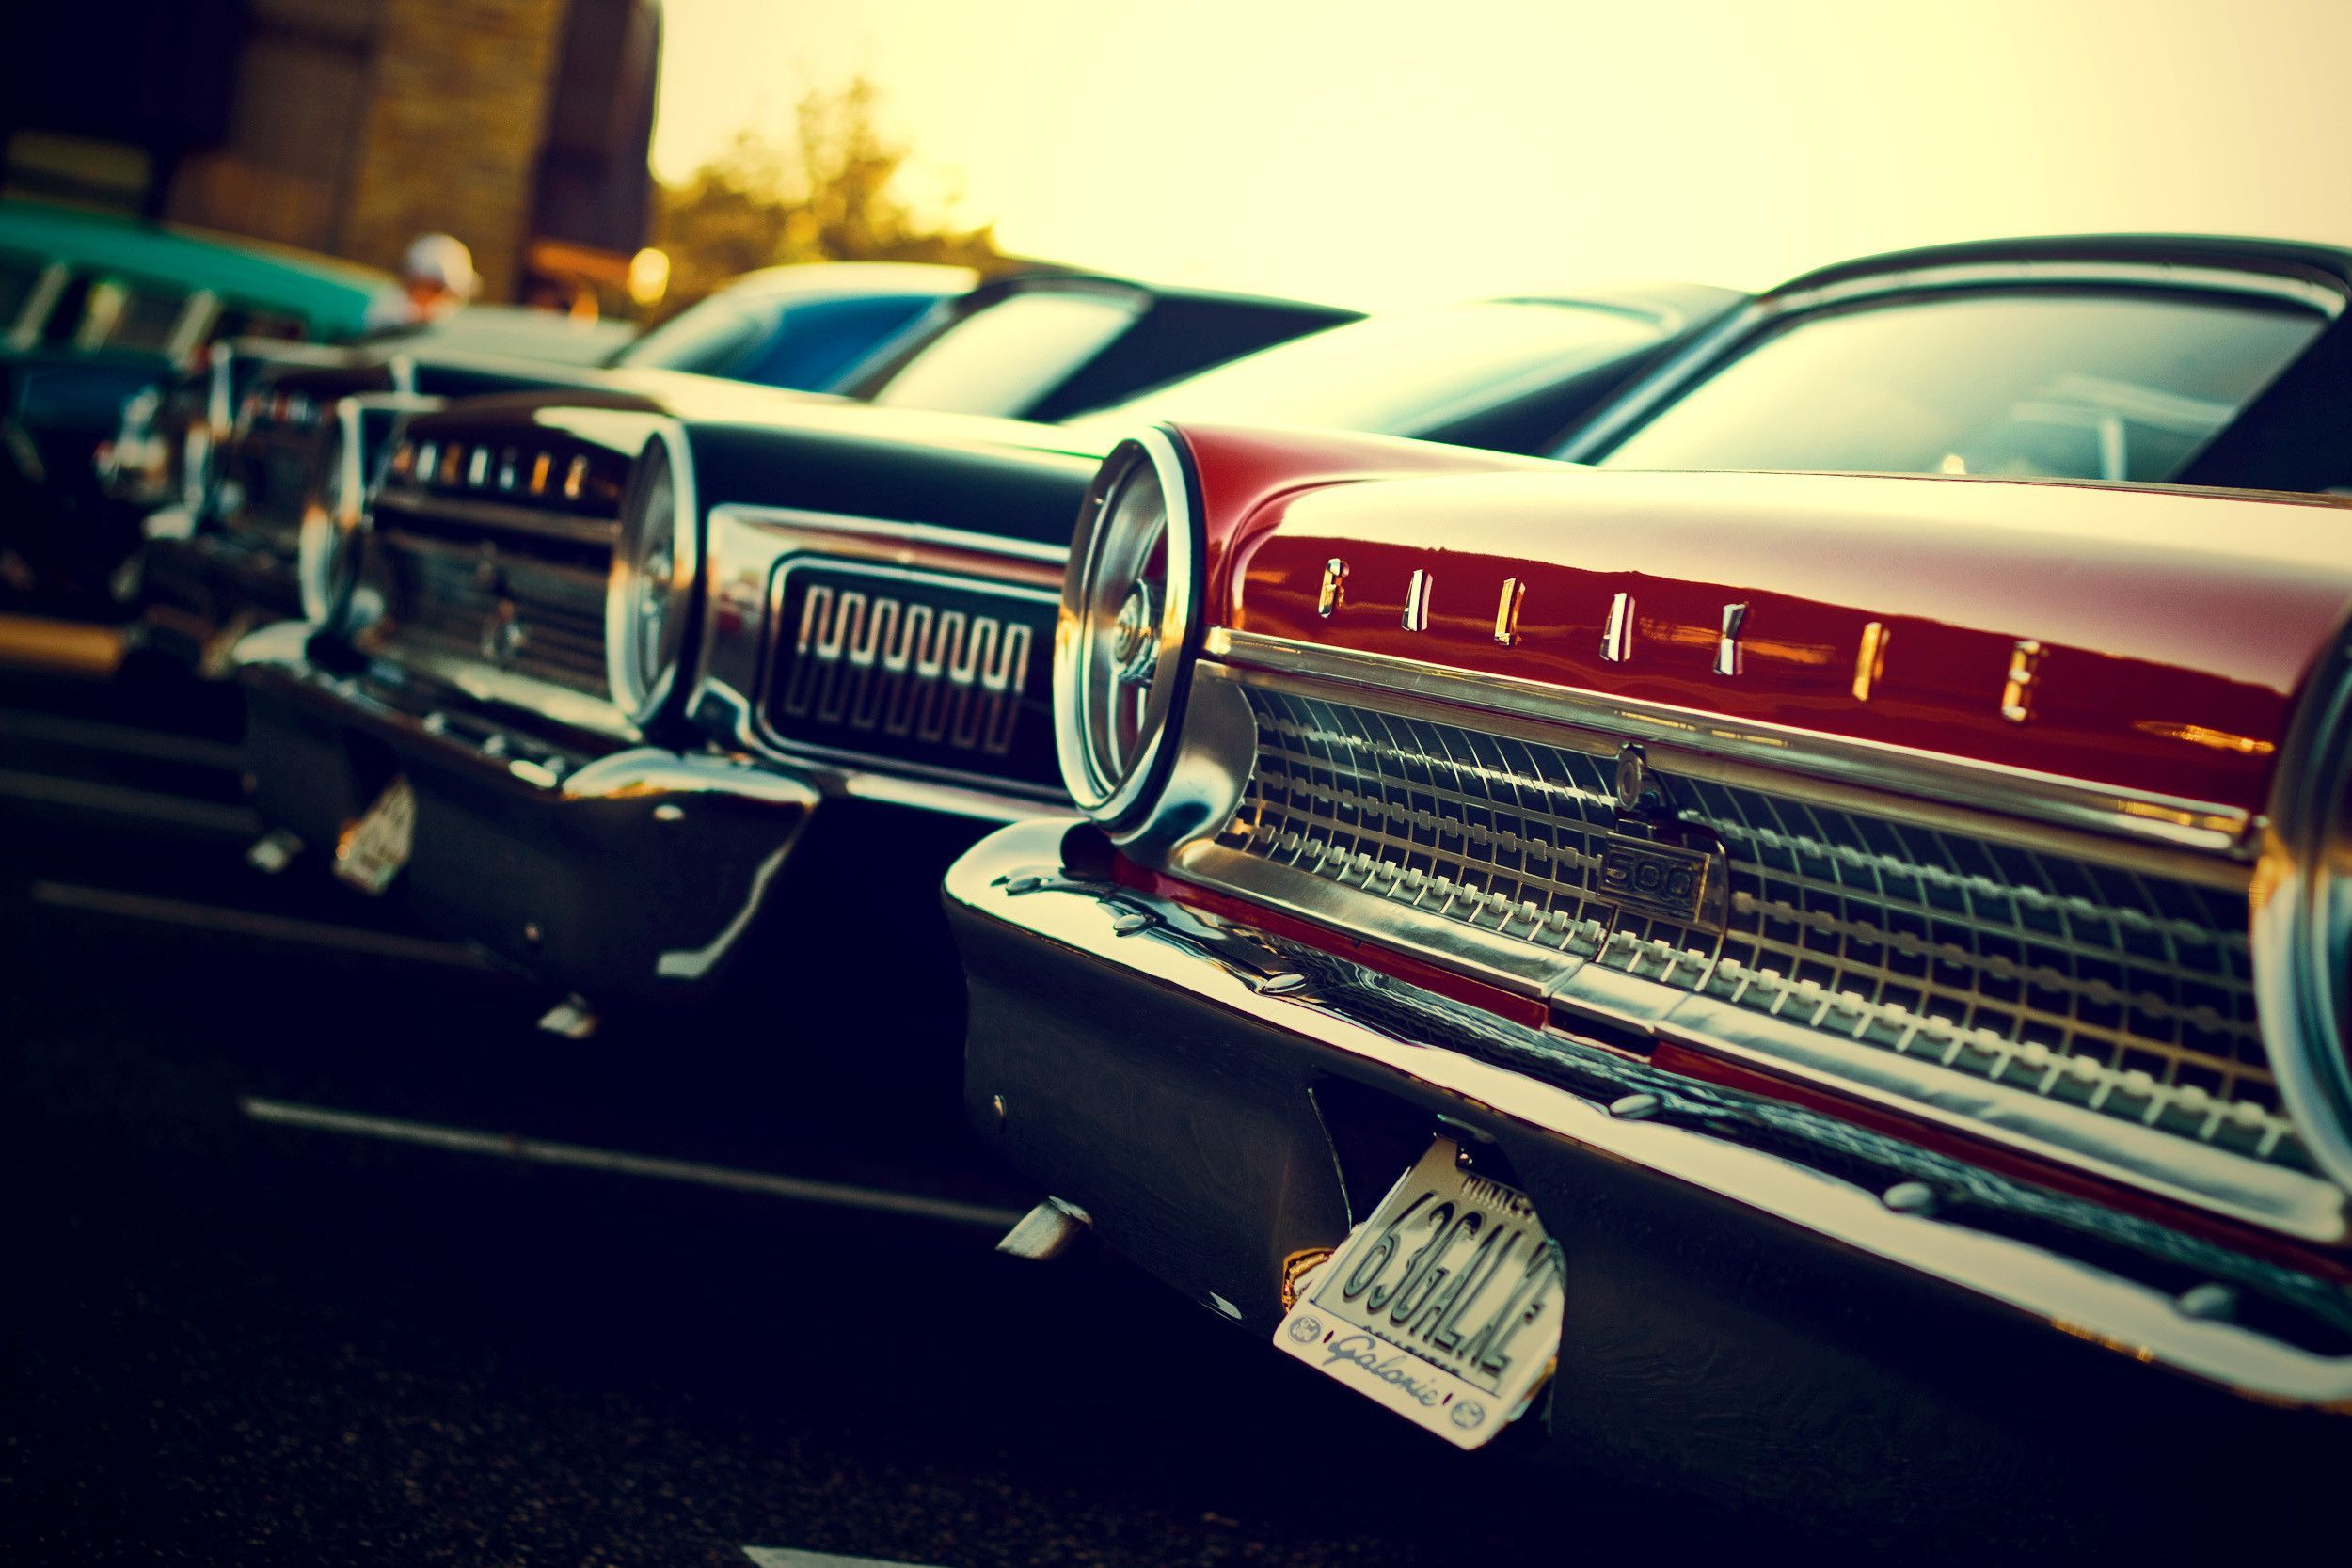 Old School Muscle Cars Wallpapers Top Free Old School Muscle Cars Backgrounds Wallpaperaccess